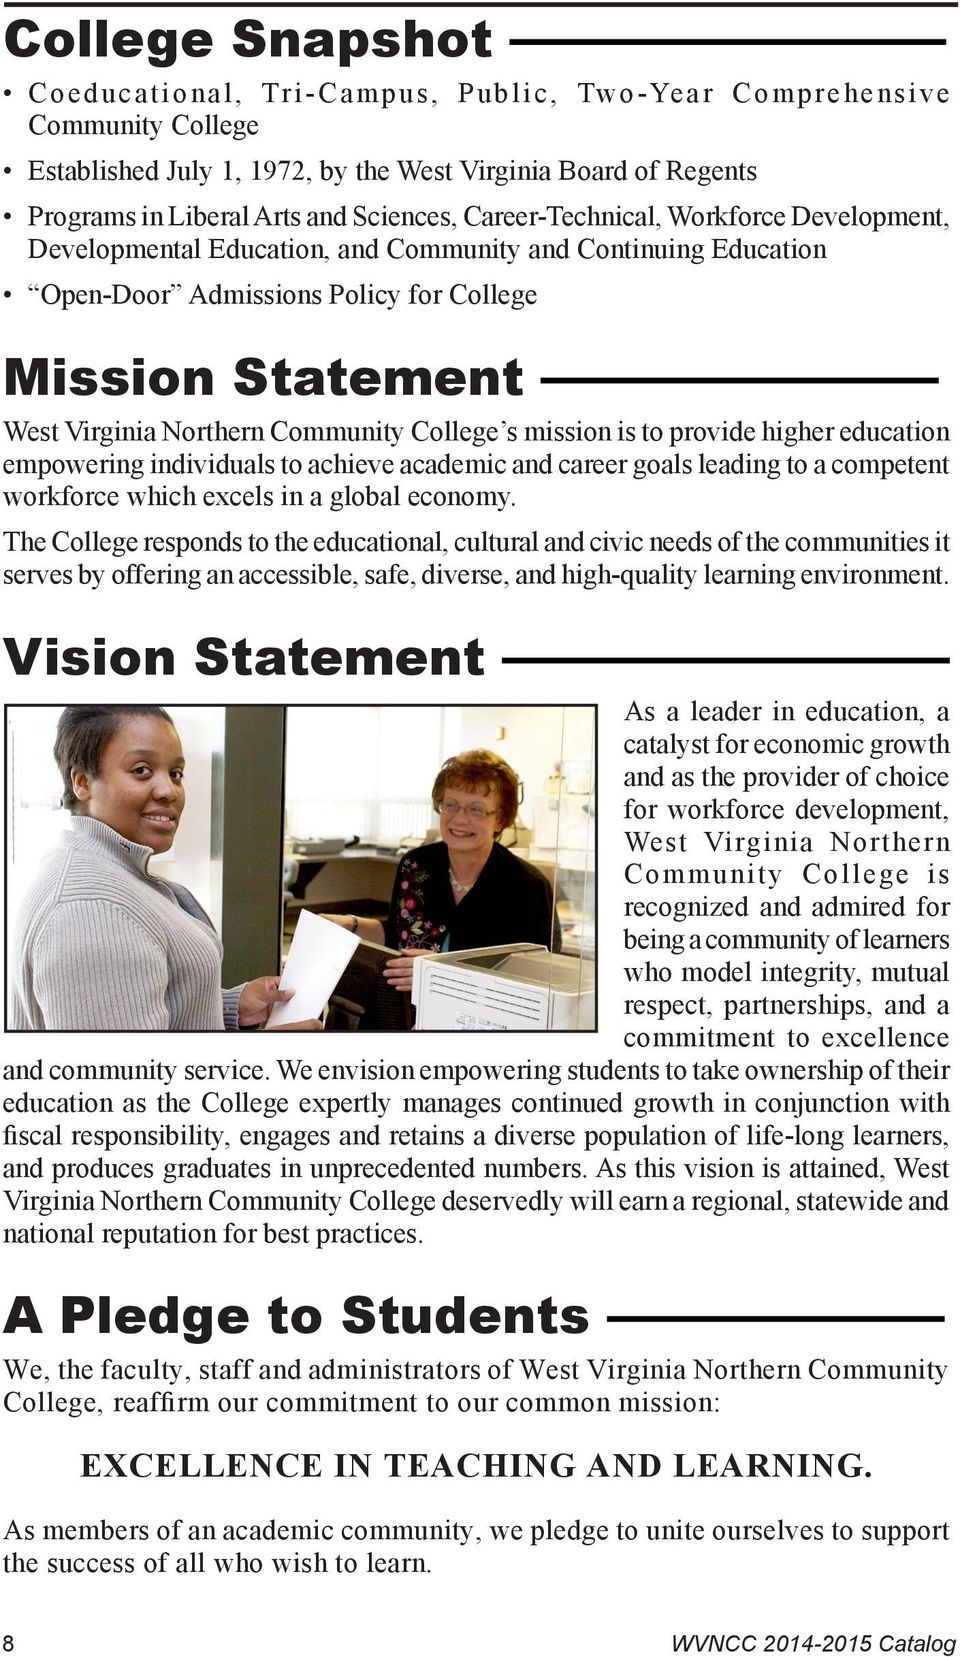 College s mission is to provide higher education empowering individuals to achieve academic and career goals leading to a competent workforce which excels in a global economy.